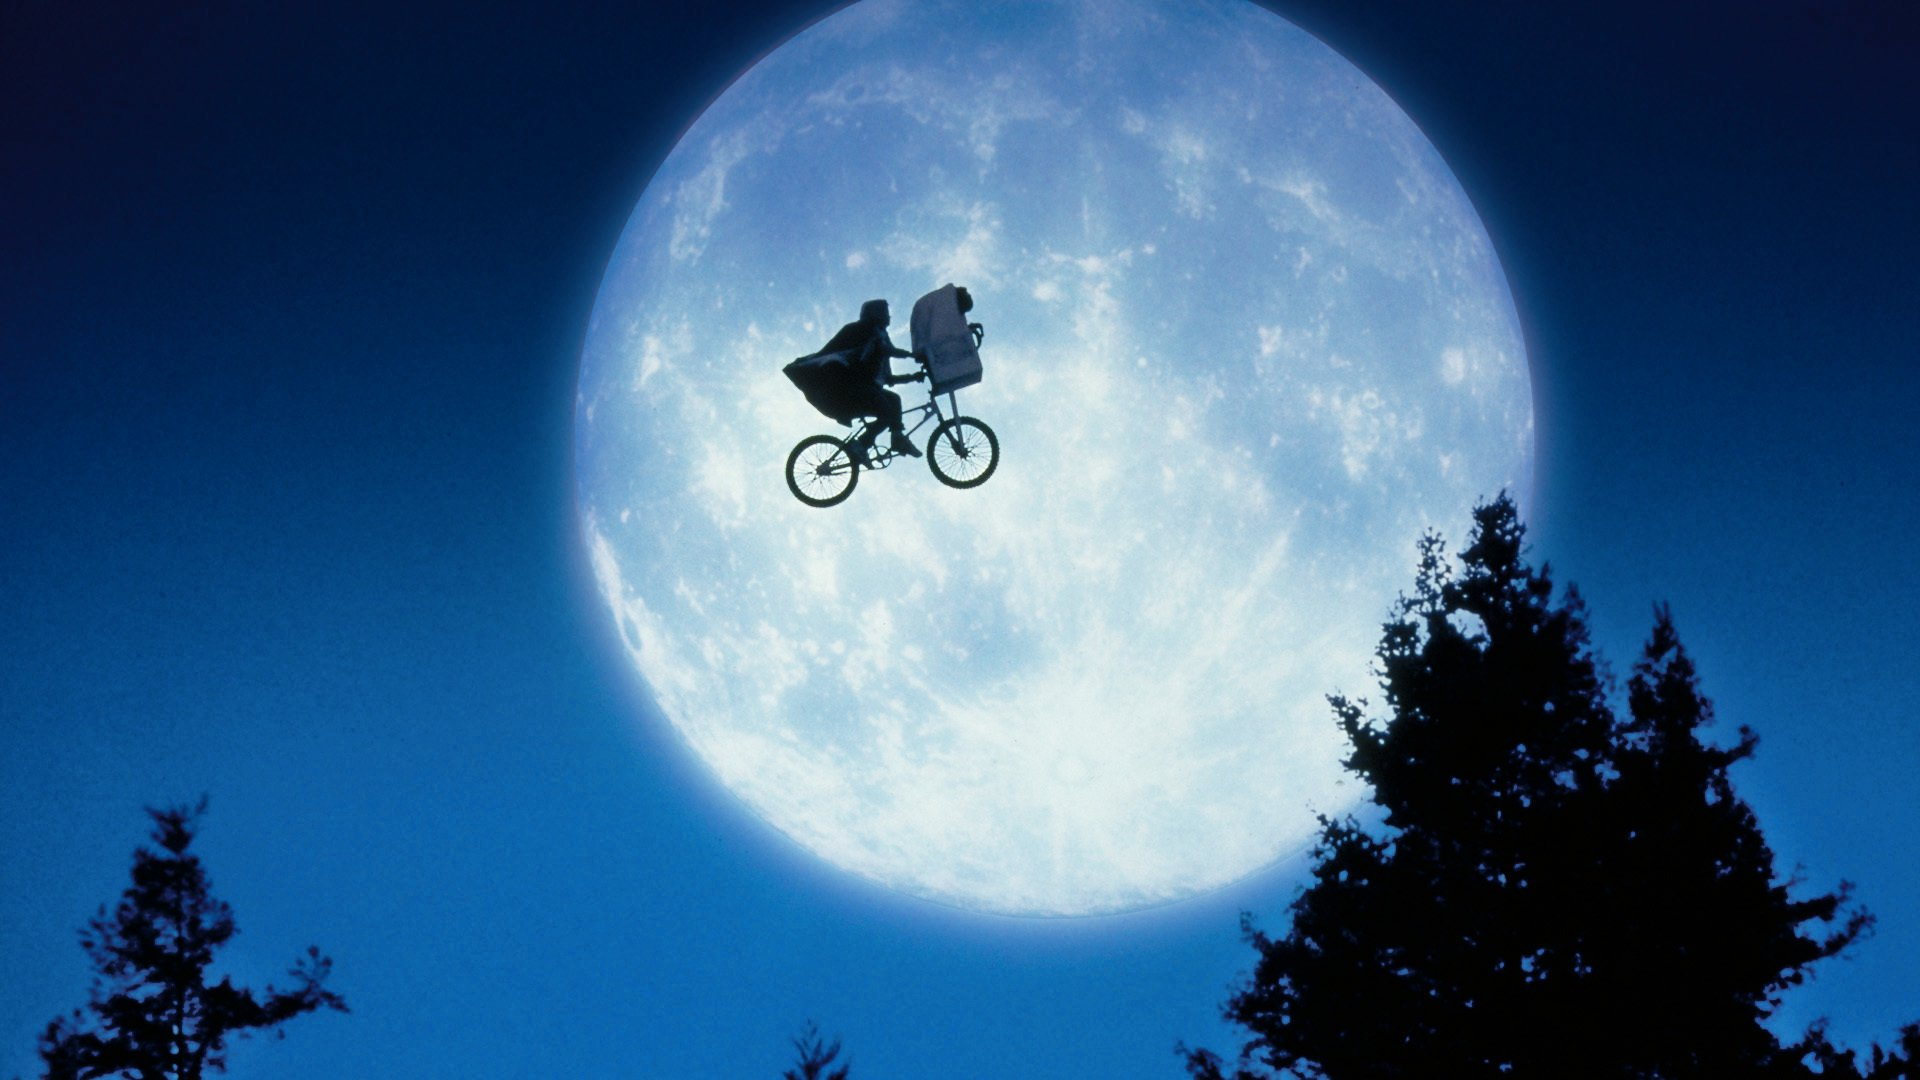 The flying bicycle in E.T. - The Extra-Terrestrial (1982)